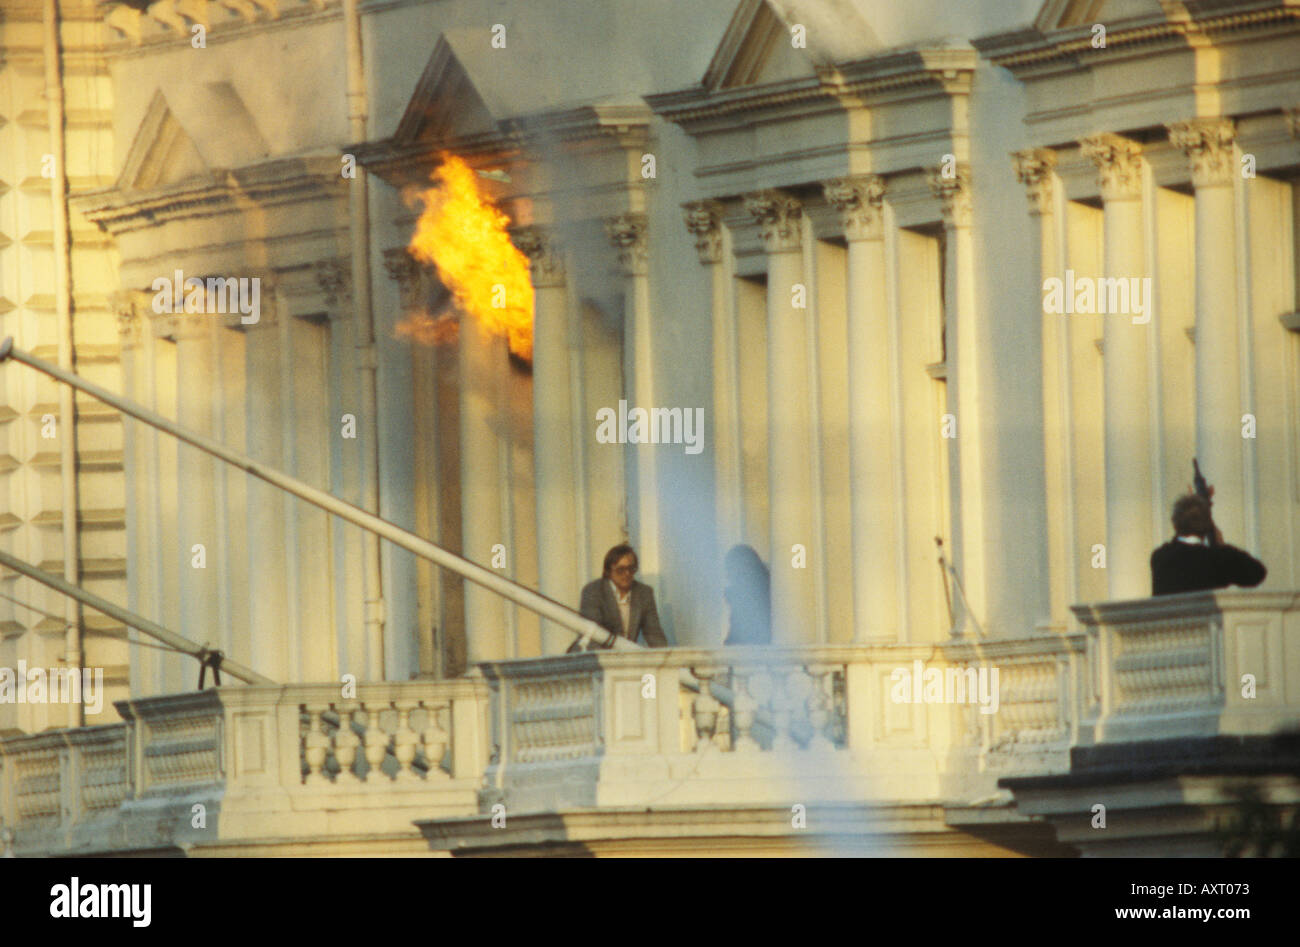 """Iranian Embassy siege May 5th 1980 London UK 1980s Simeon """"Sim"""" Harris escaping from the building. UK HOMER SYKES Stock Photo"""